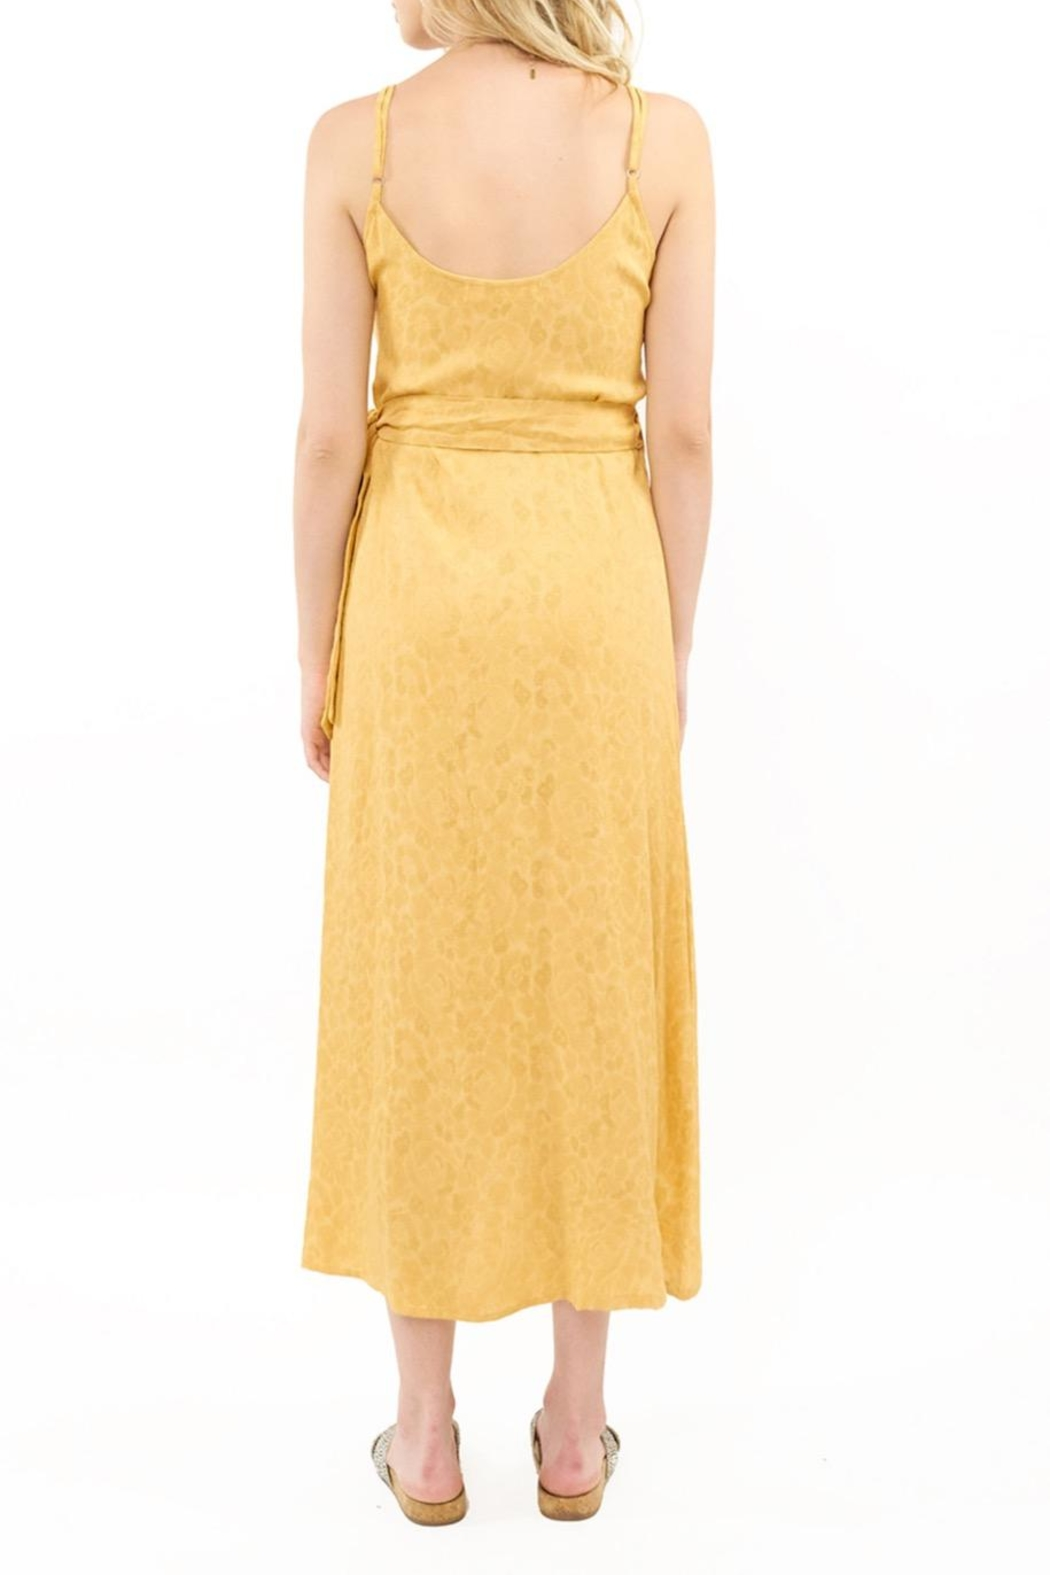 Saltwater Luxe Yellow Wrap Midi - Front Full Image